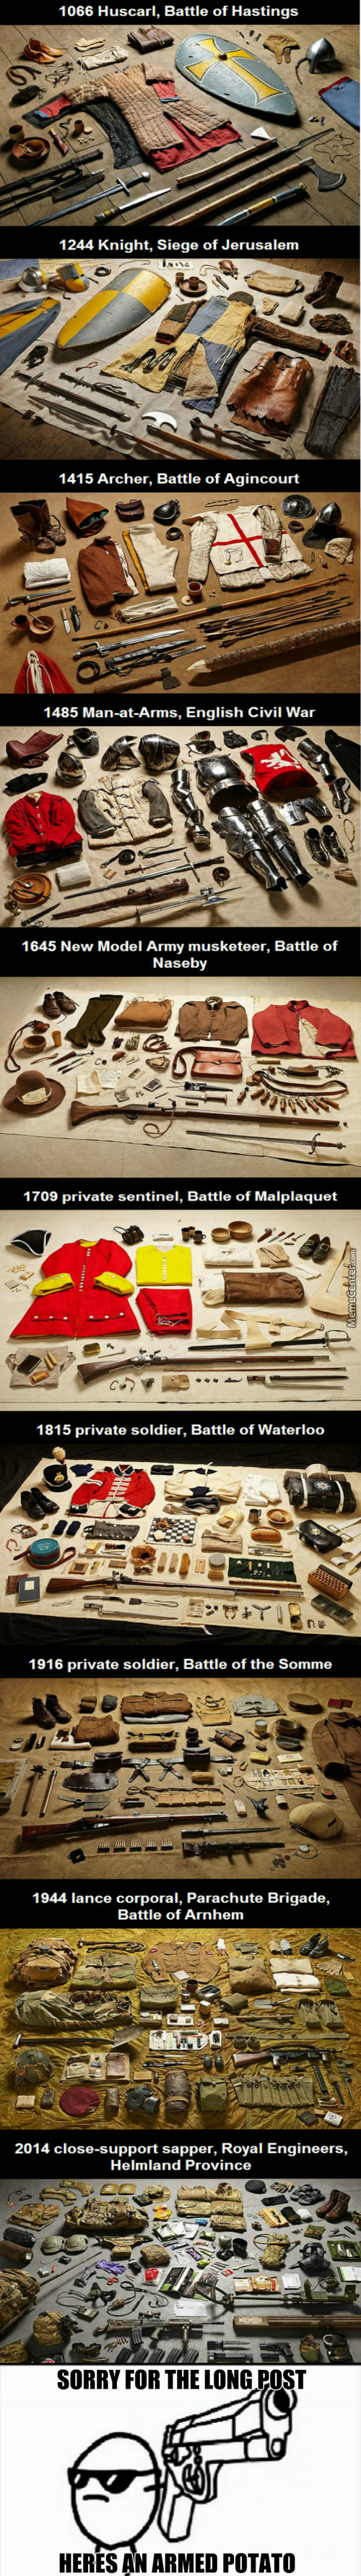 Historical Military And Equipment Uniforms From The Last 1,000 Years